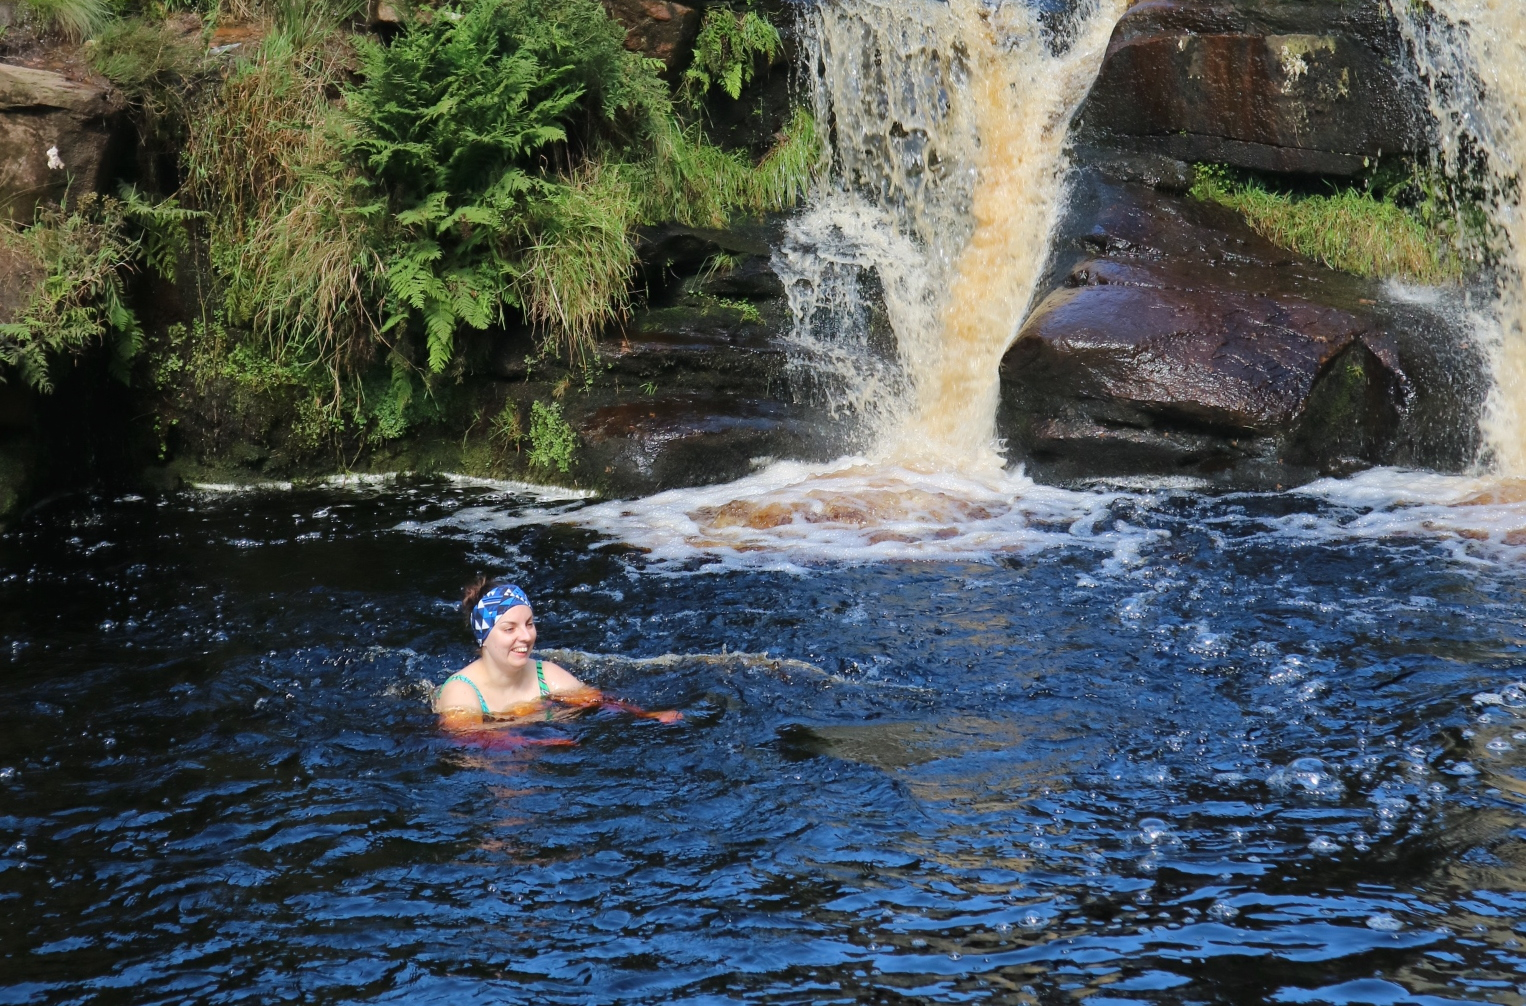 Woman has huge smile on her face as she immerses herself in cold water. You can see her shoulders and swimming costume straps. She has her hair tied up and wears a blue, patterned head band. Behind her is green folliage and part of a waterfall, cascading over rocks